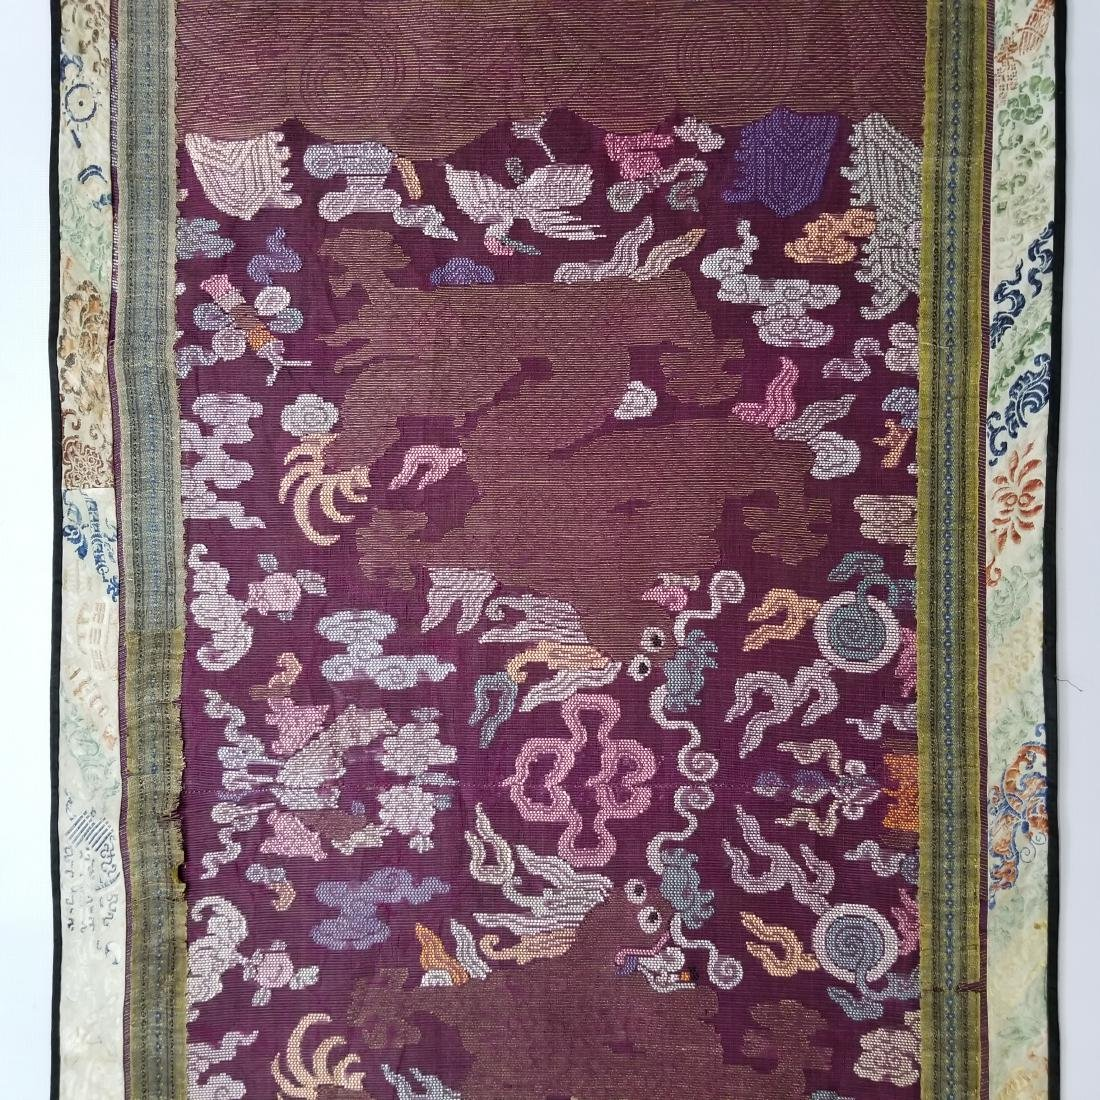 Antique Chinese Silk Hand Woven Dragons Brocade Panel - 4